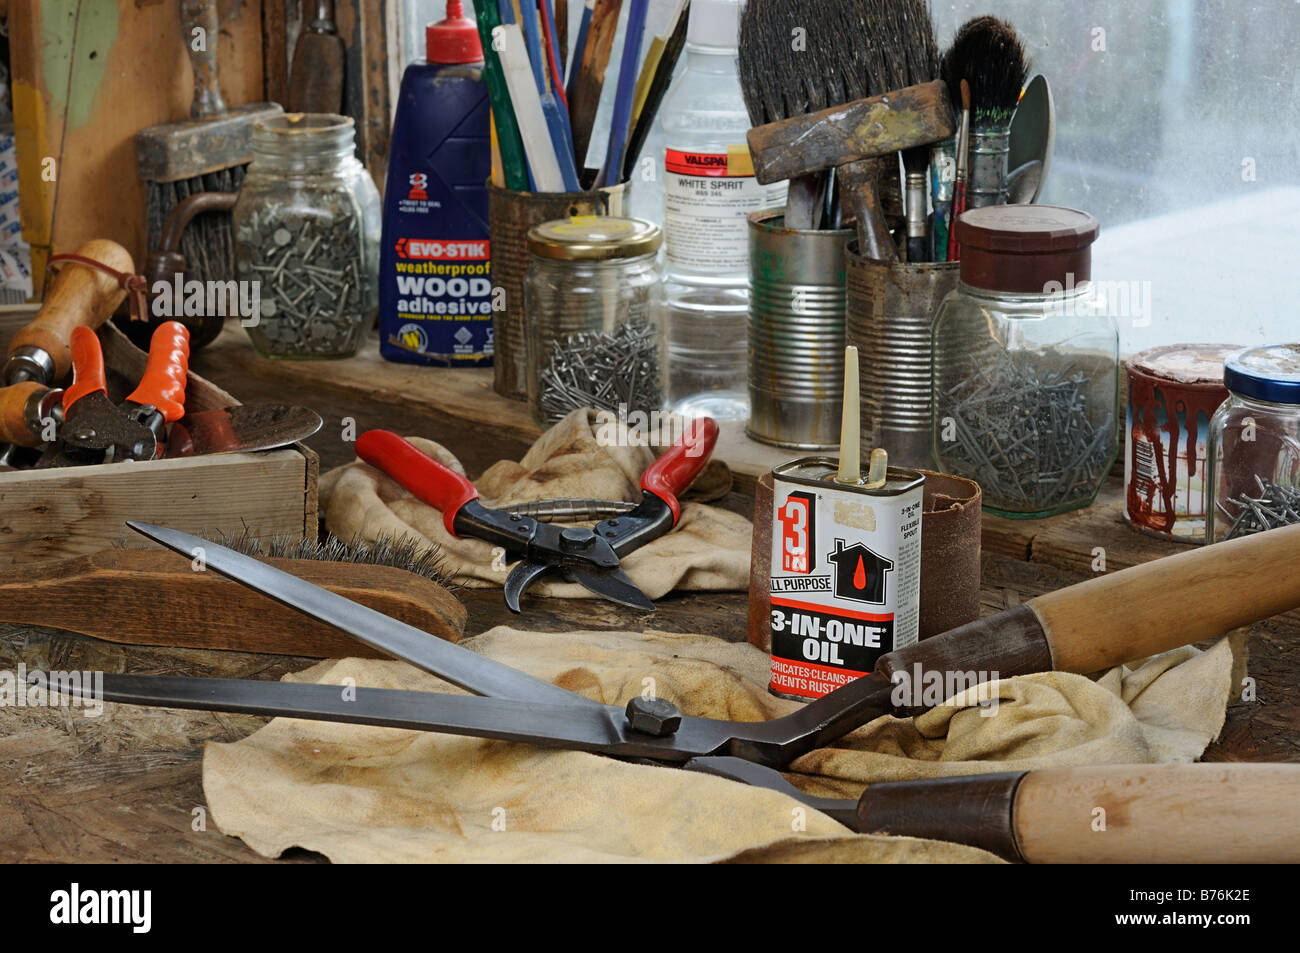 Garden tools secateurs shears on workshop bench ready to be cleaned and sharpened UK December - Stock Image